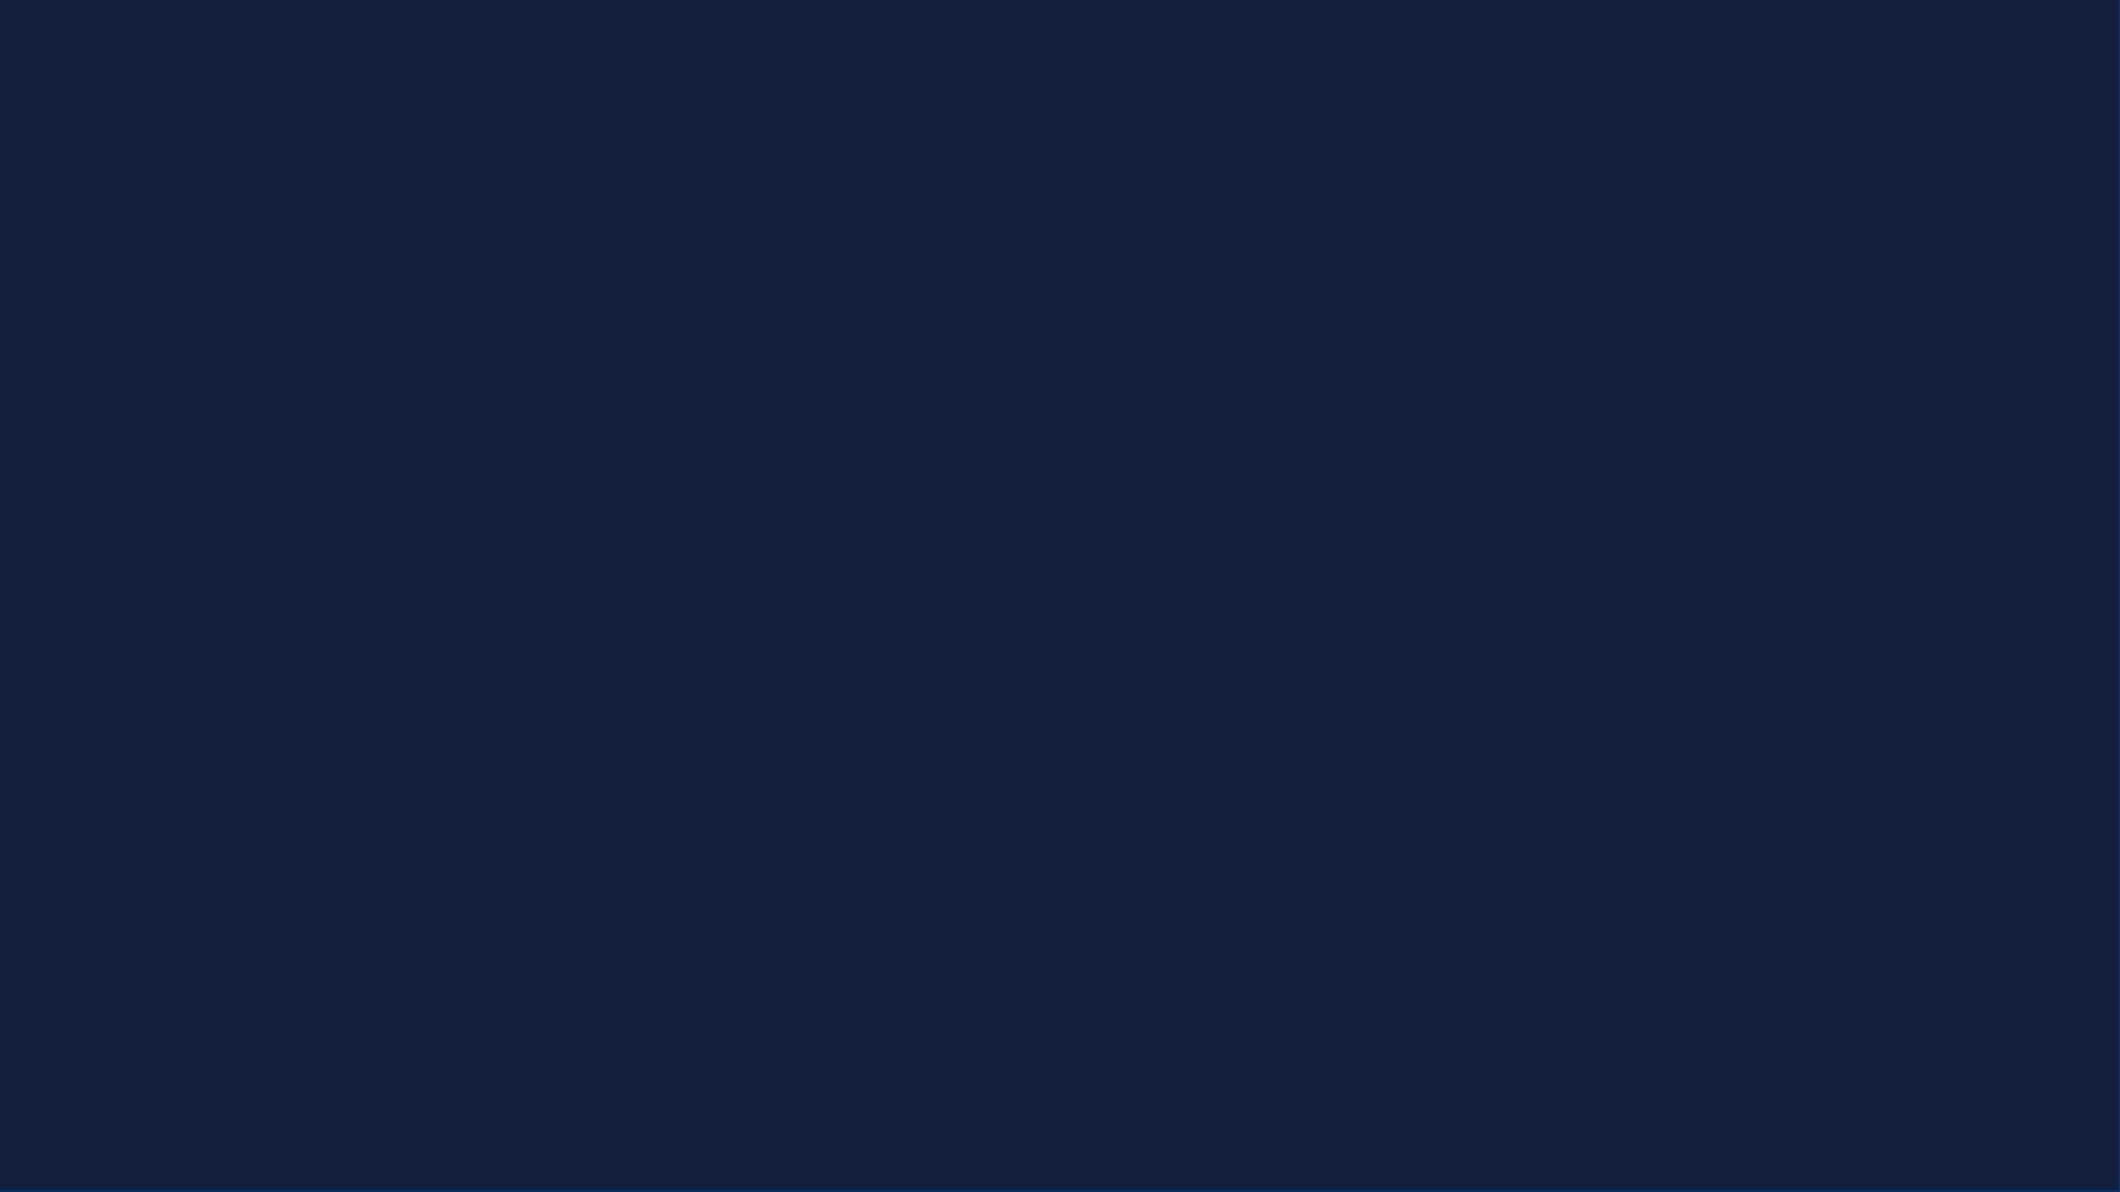 Navy Blue Backgrounds